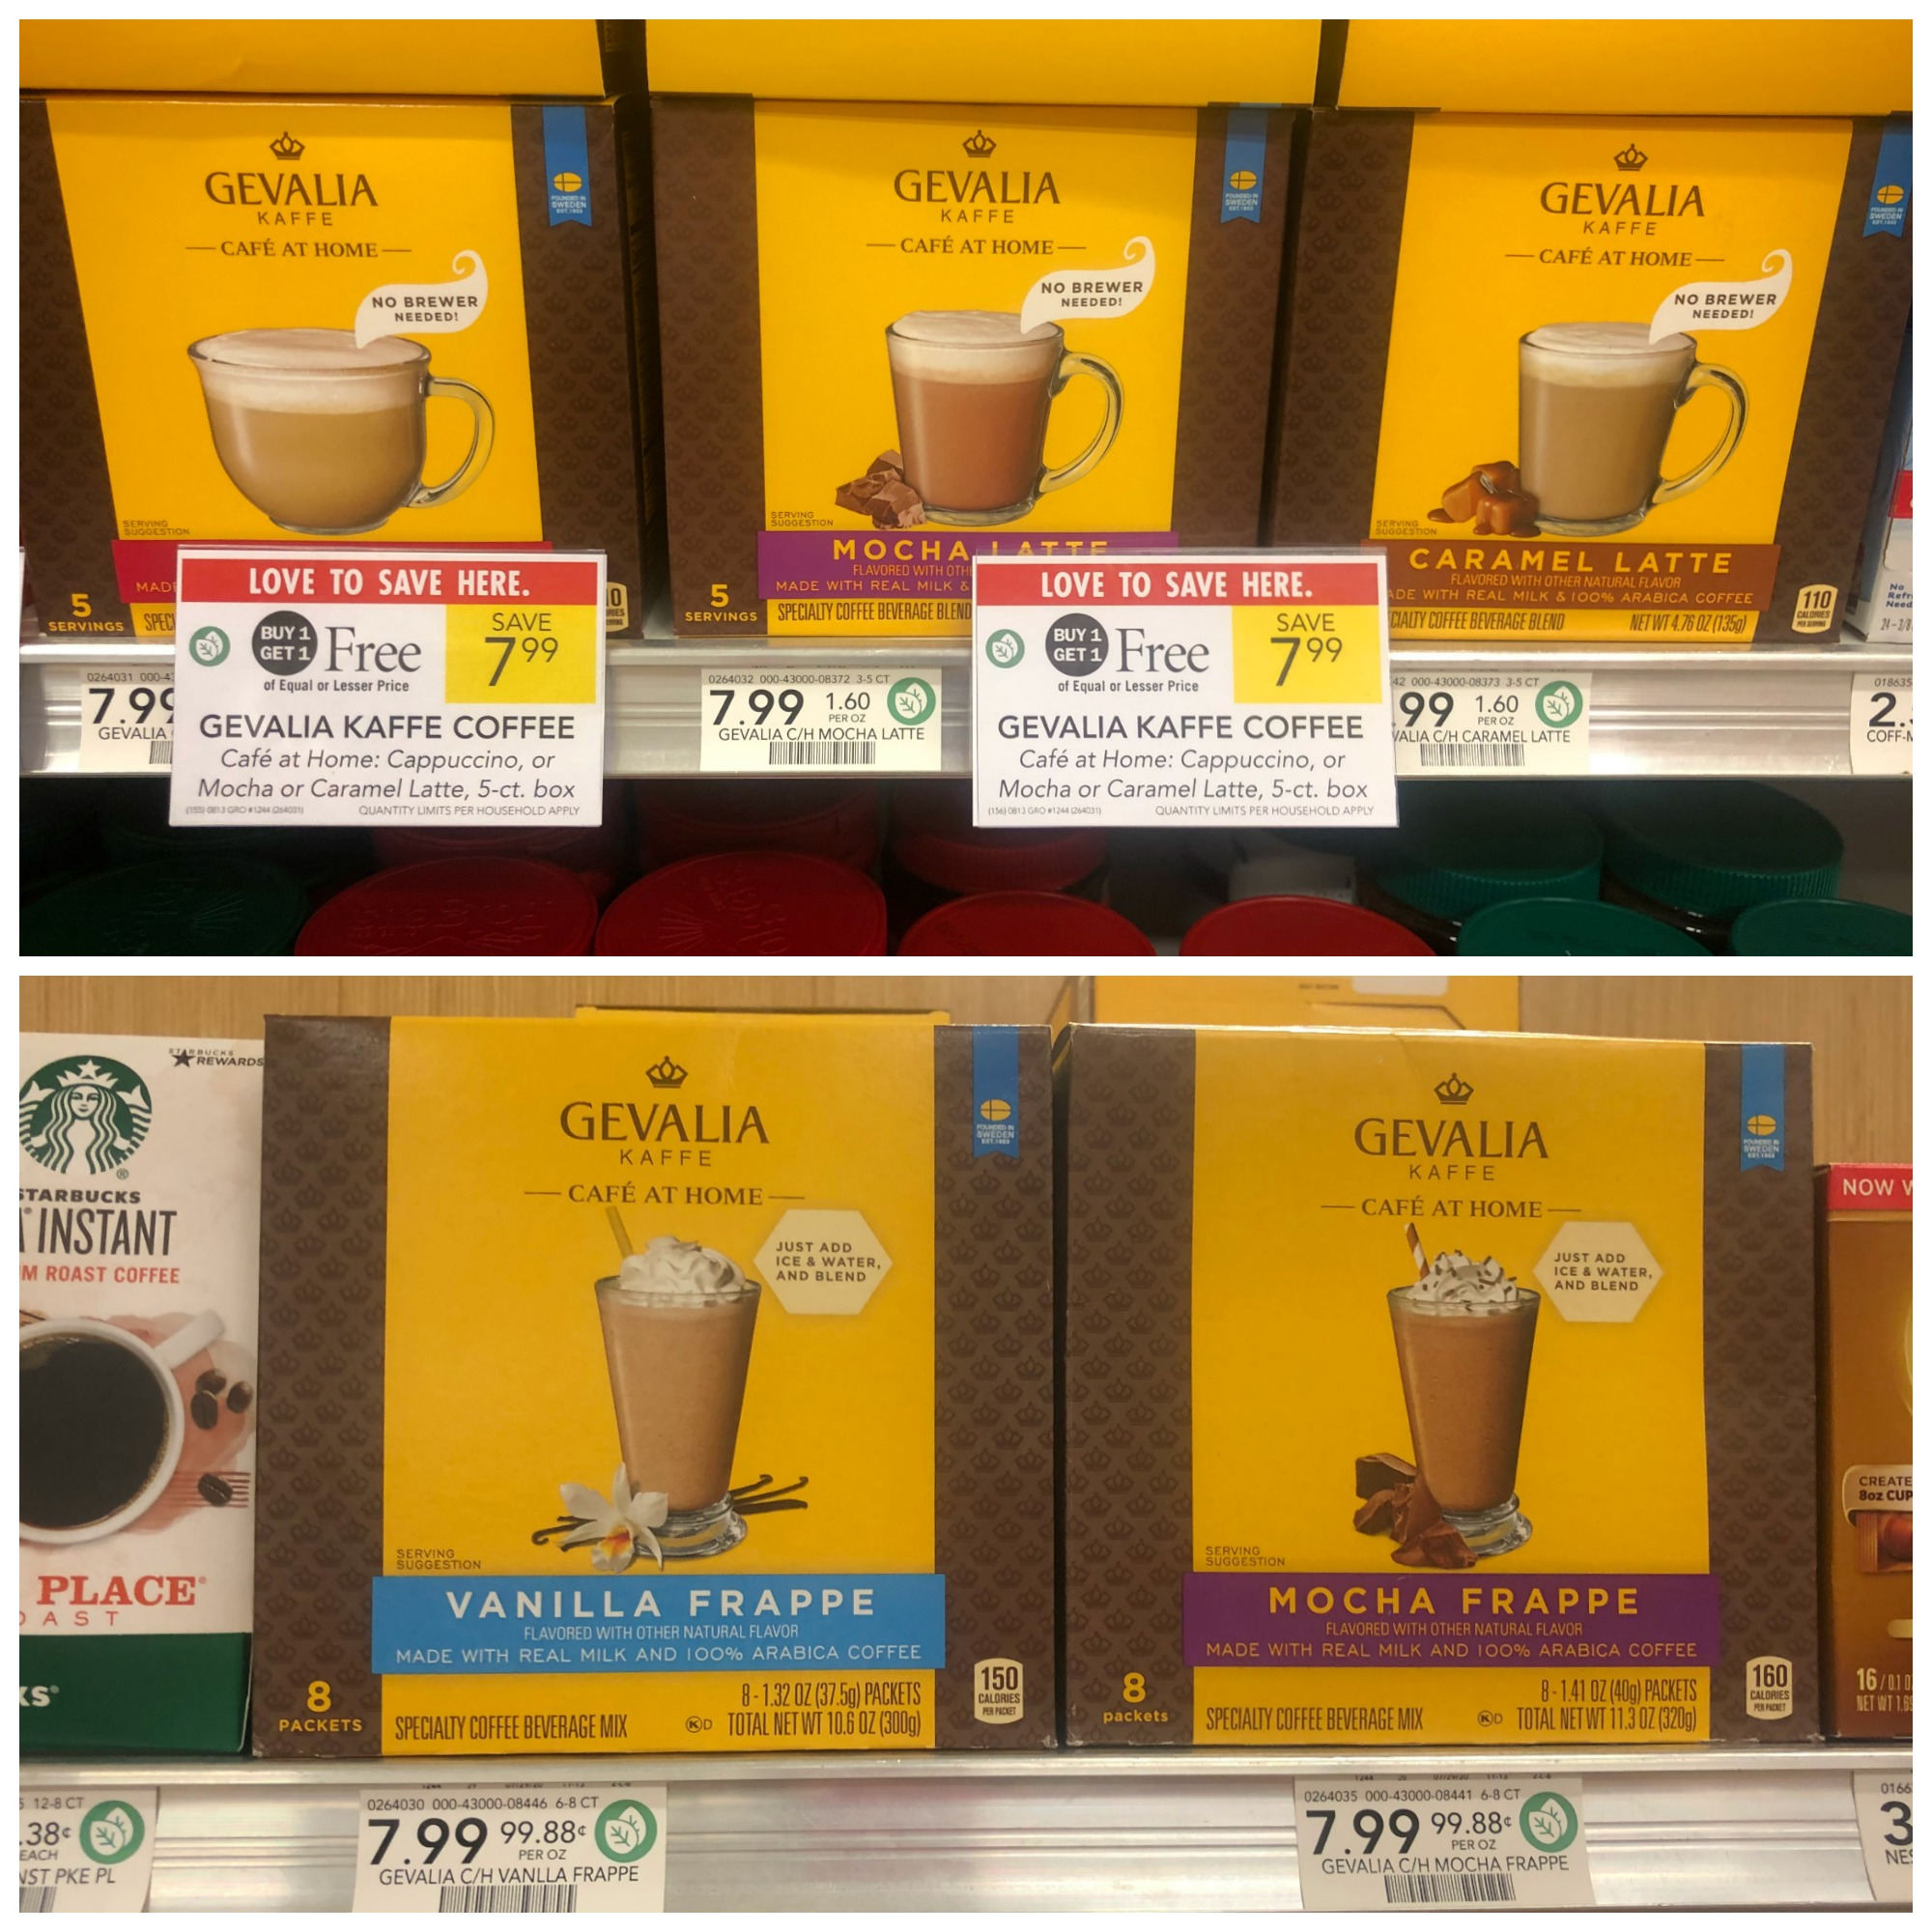 Gevalia Café at Home And Gevalia Frappe Products Are BOGO At Publix - Great Taste No Brewer Required! on I Heart Publix 1